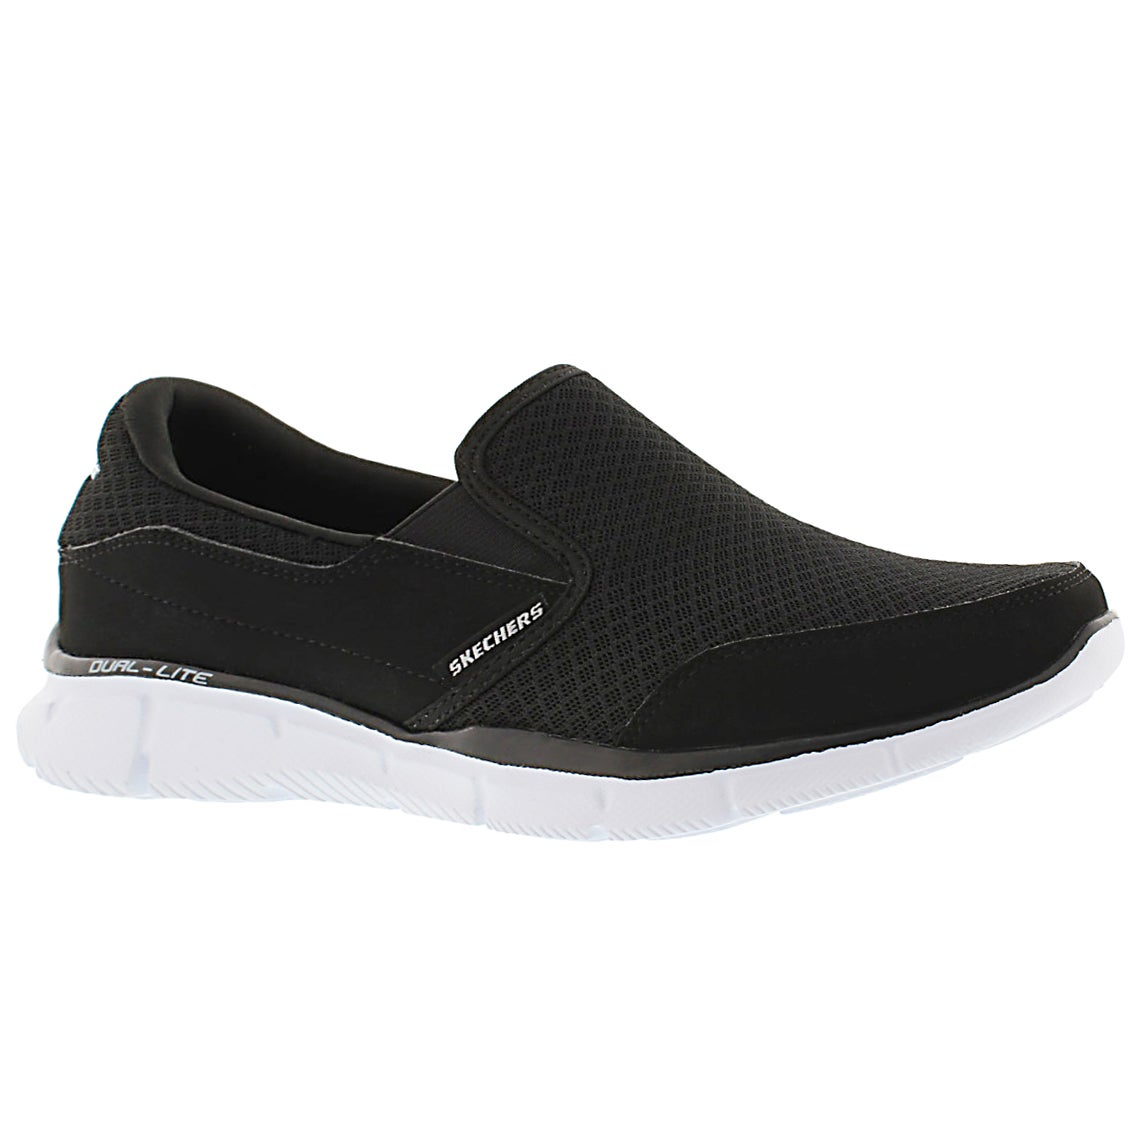 Men's PERSISTENT black/white slip on sneakers